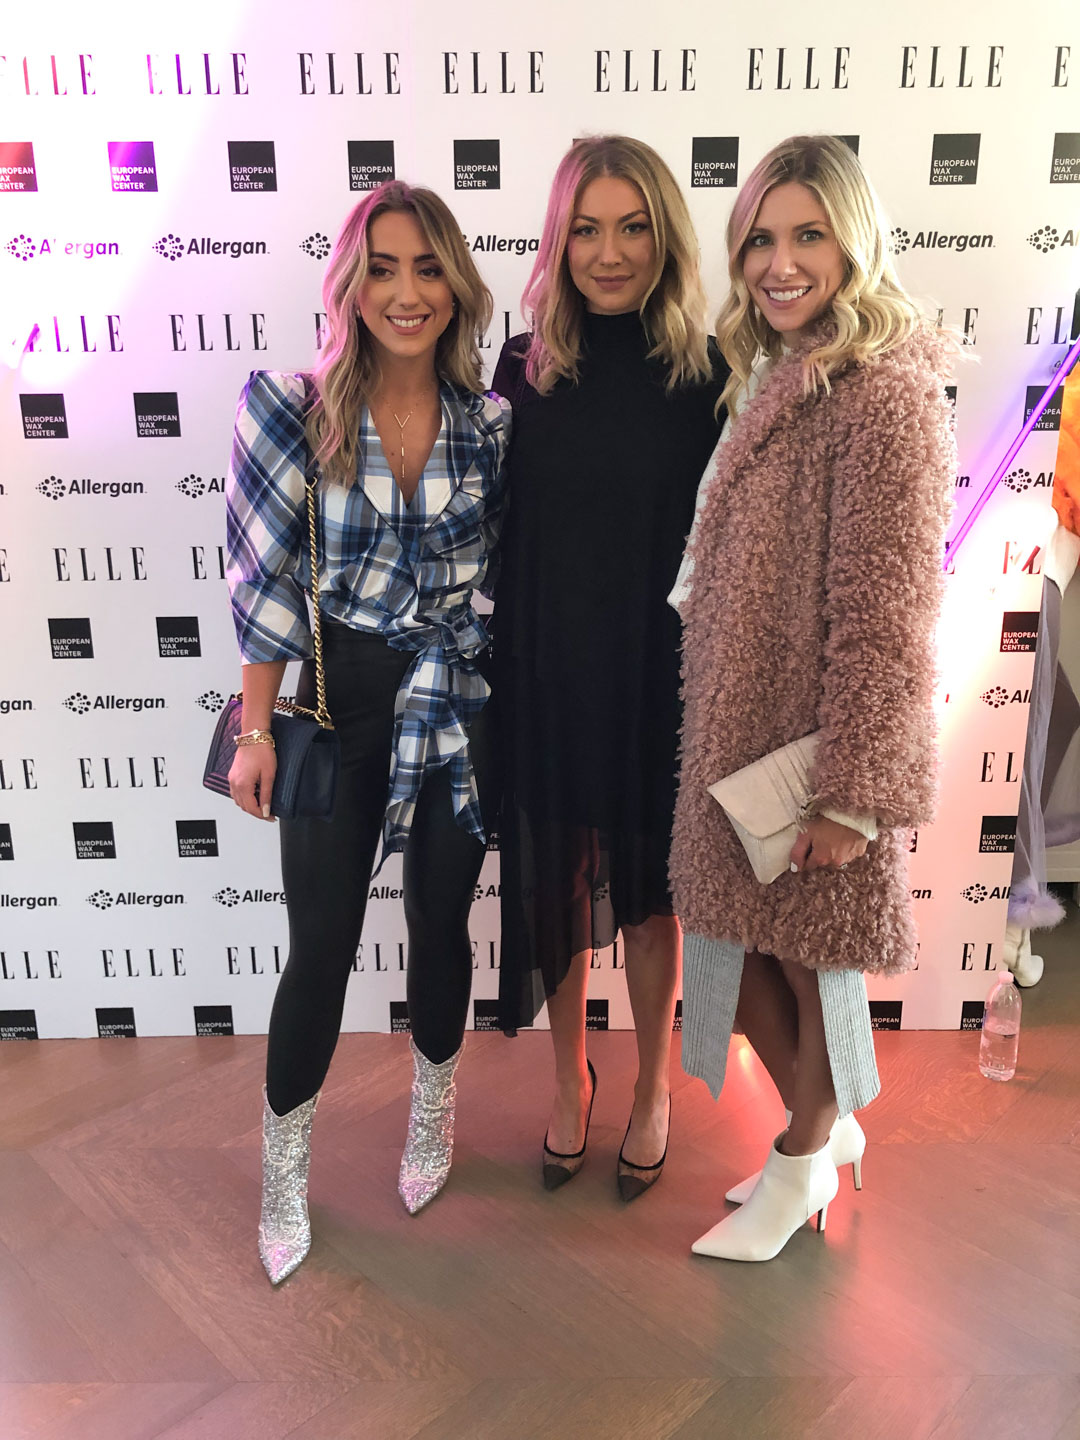 Elle Magazine Party Stassi Shroeder